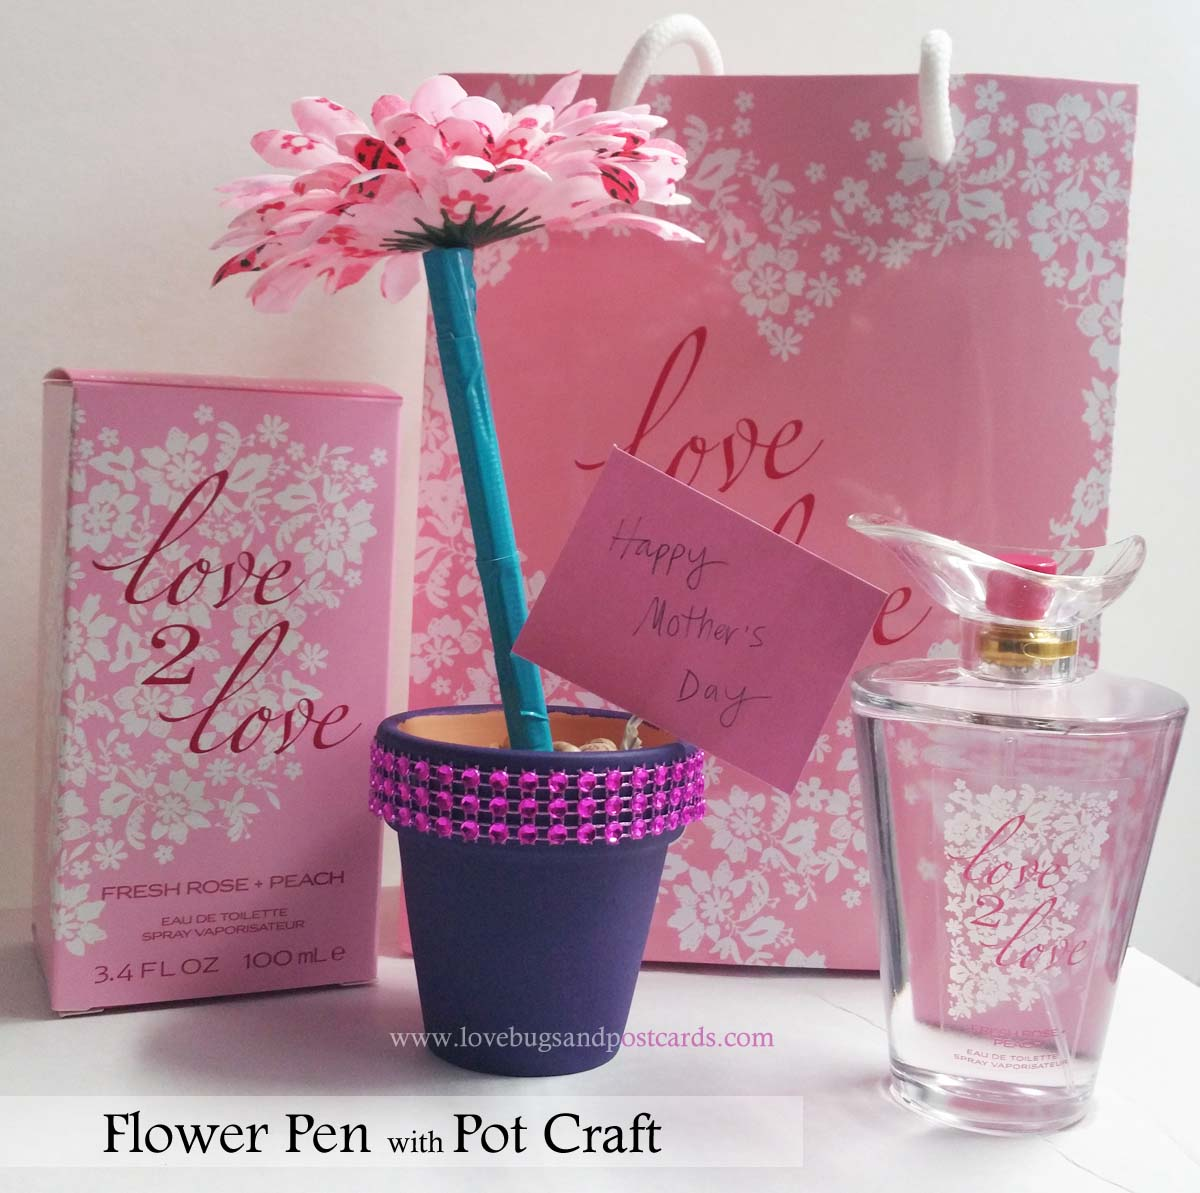 Flower pen and pot craft lovebugs and postcards